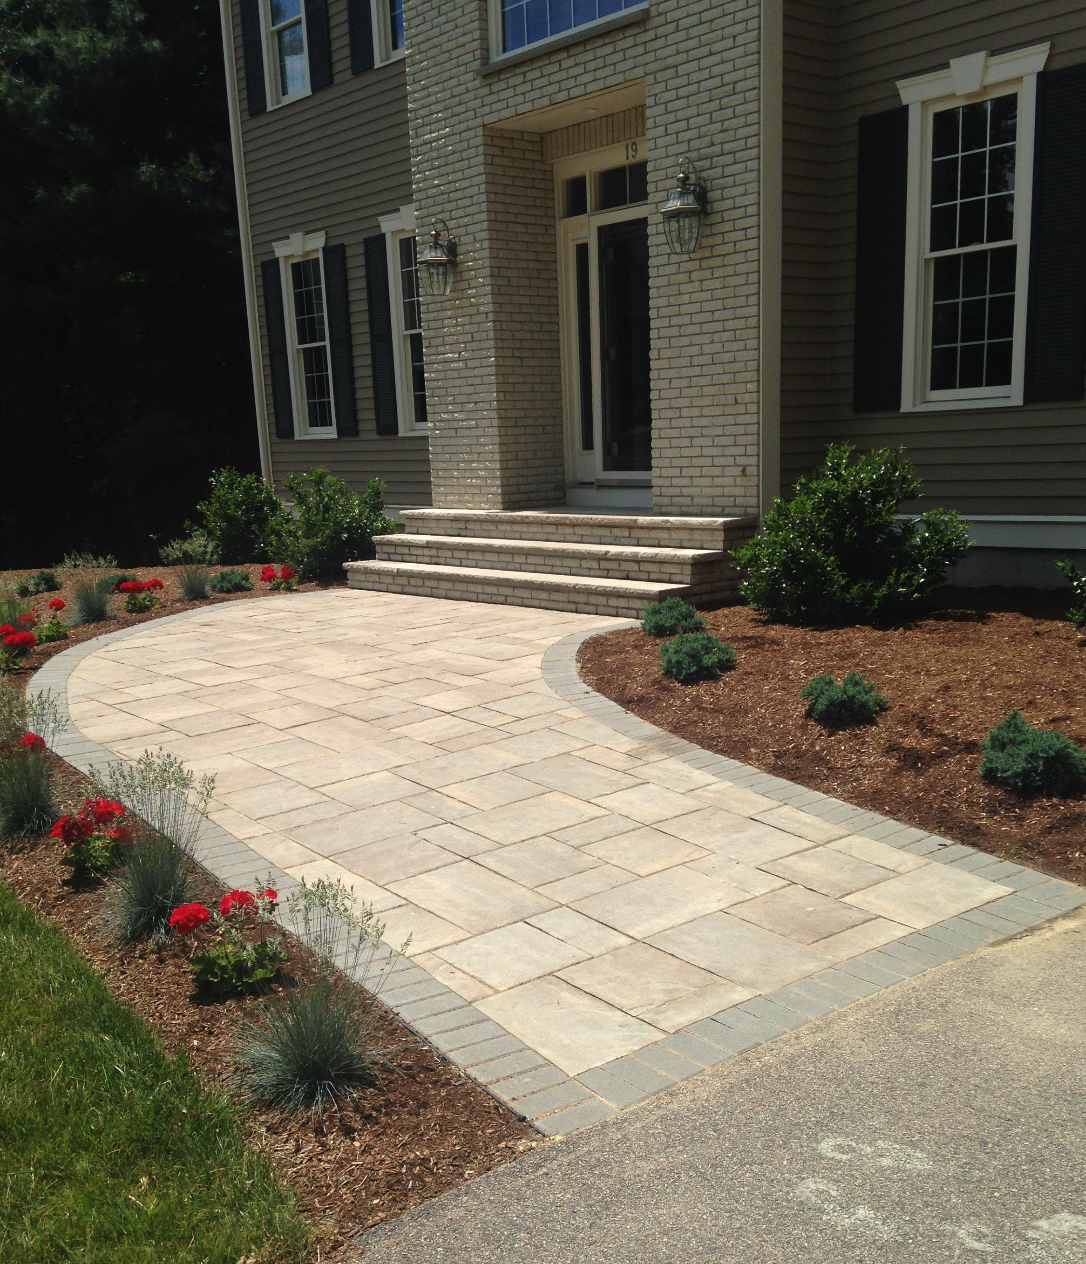 Stunning walkway landscape design in Sharon Massachusetts